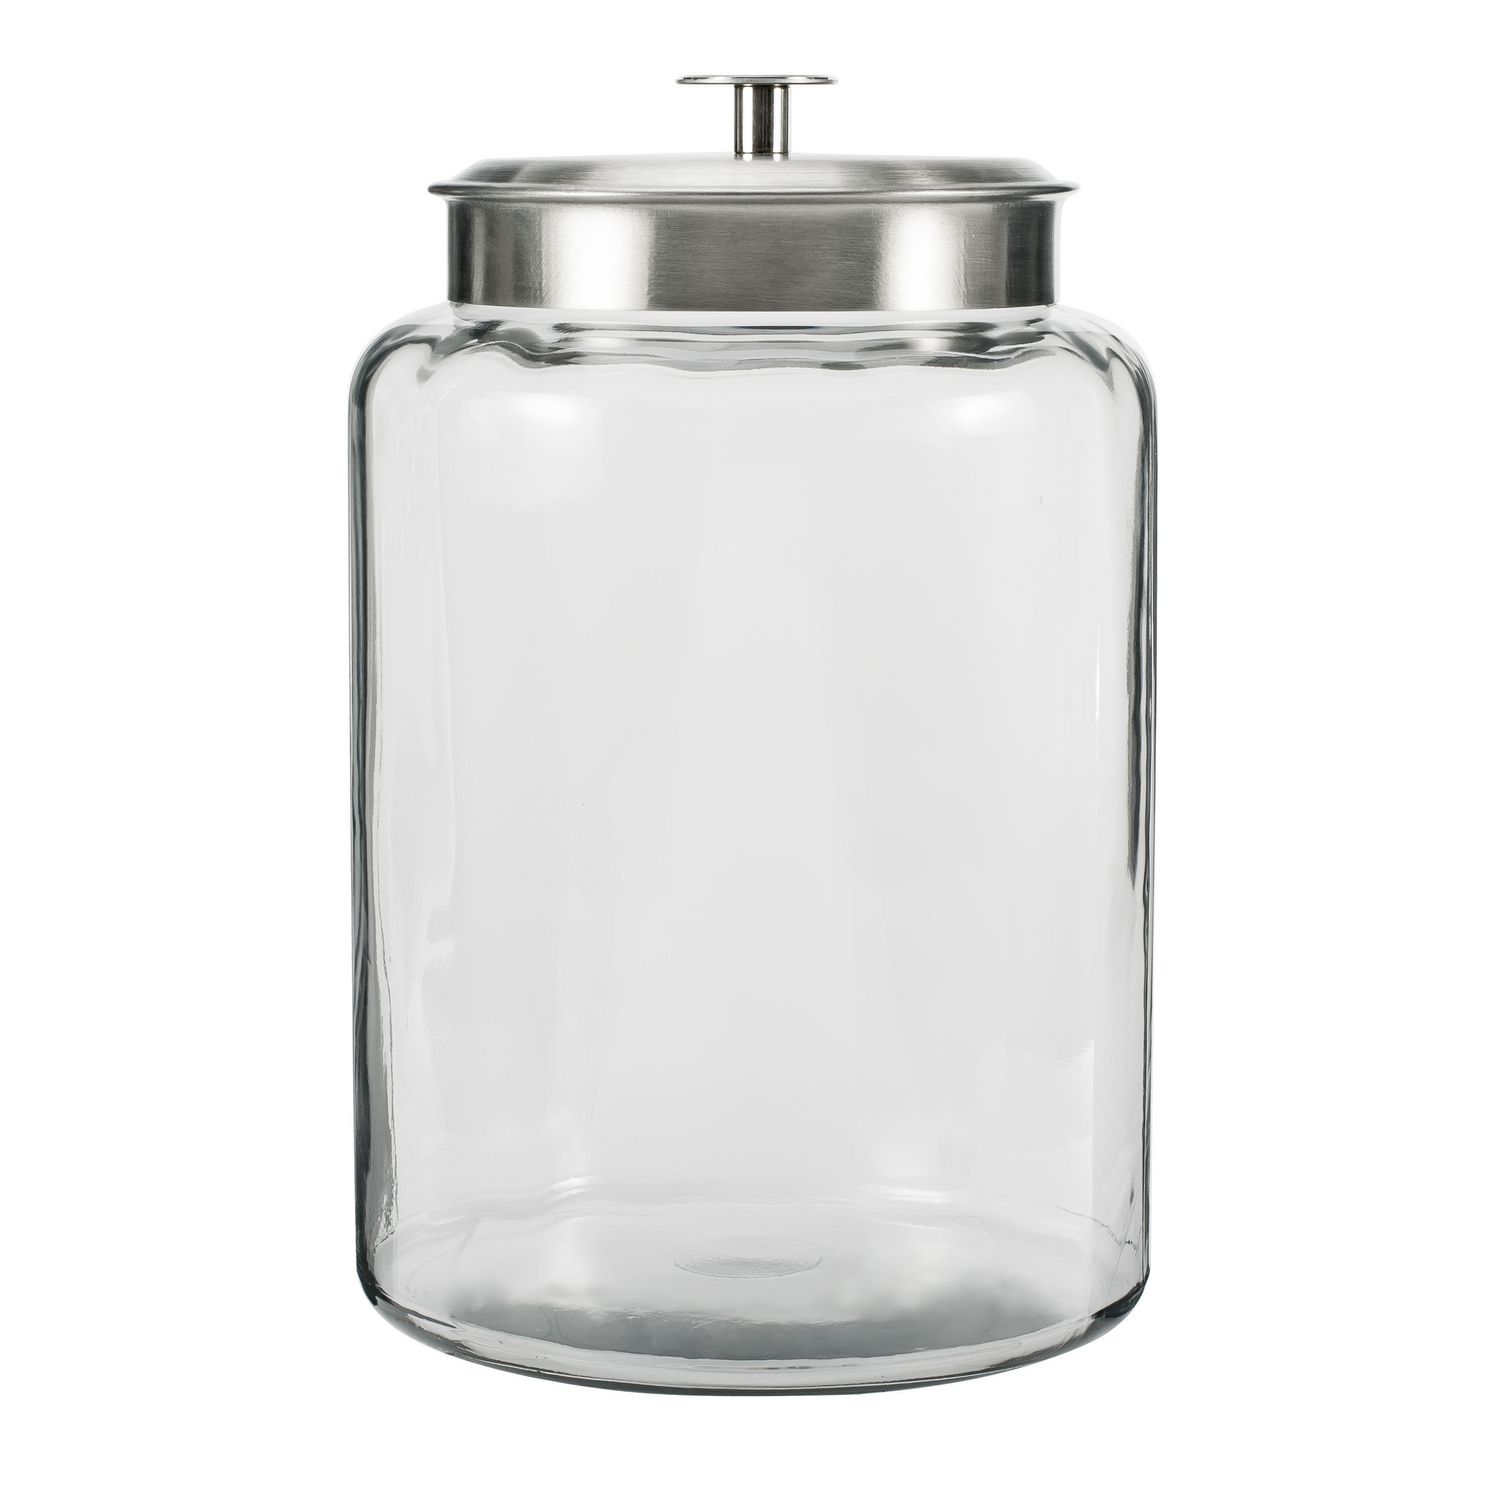 canisters of chicken kitchen inspiration white ceramic canister enchanting sets with decorative